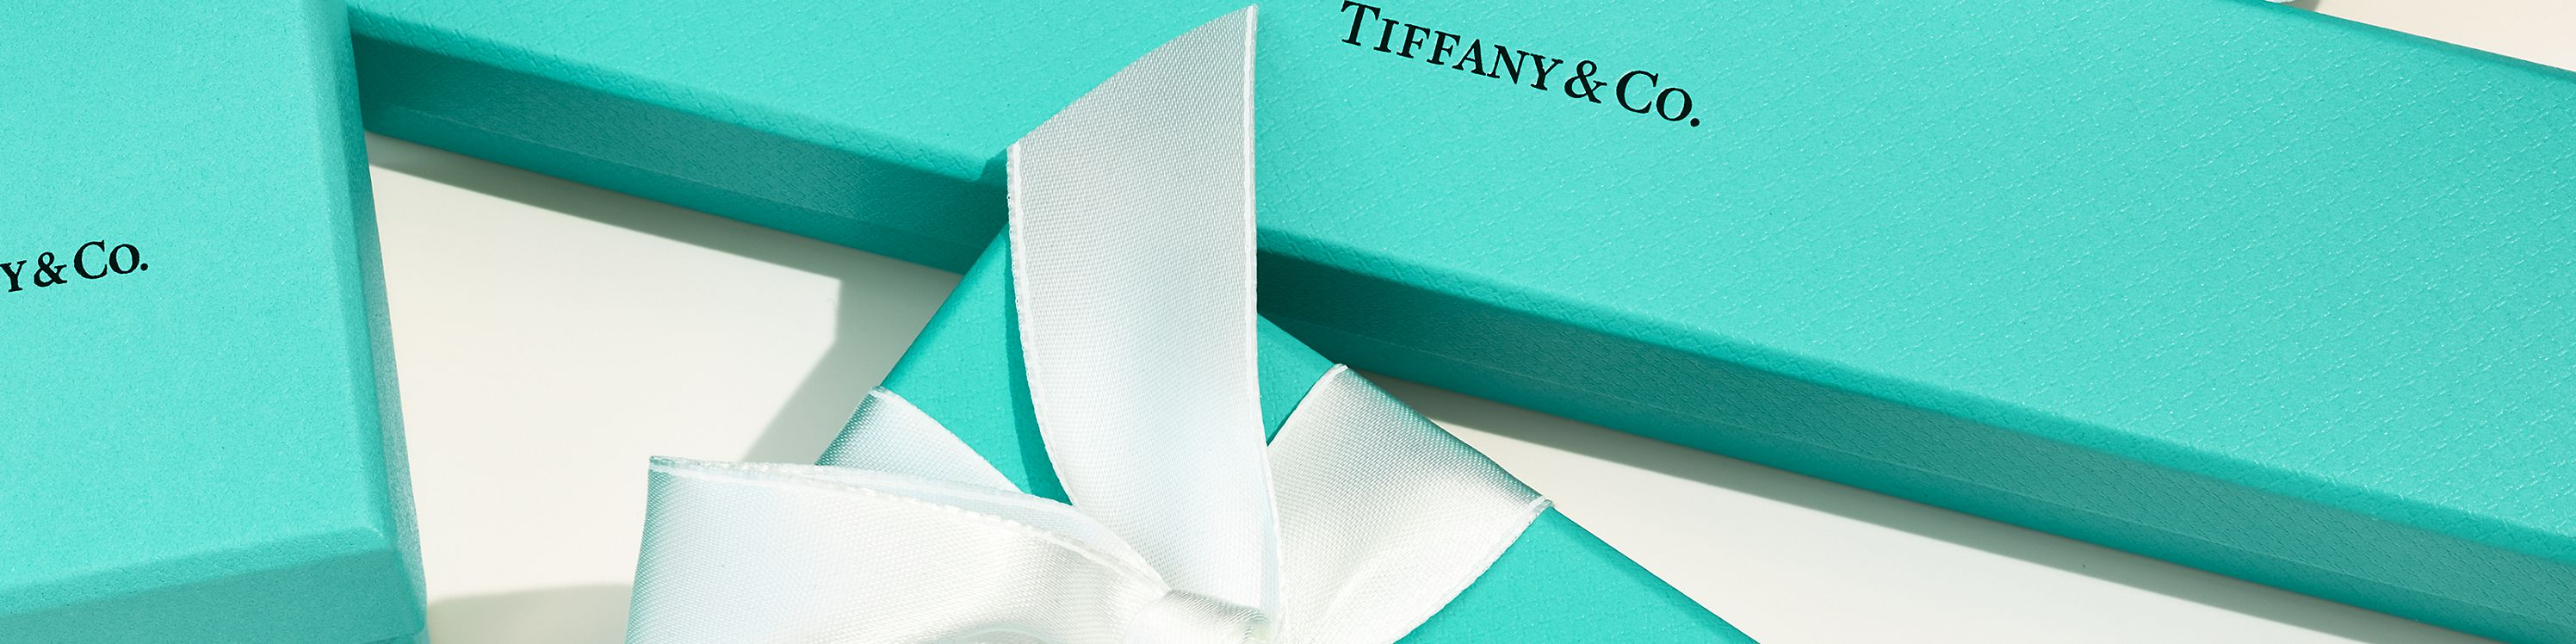 Cronología de Tiffany & Co.